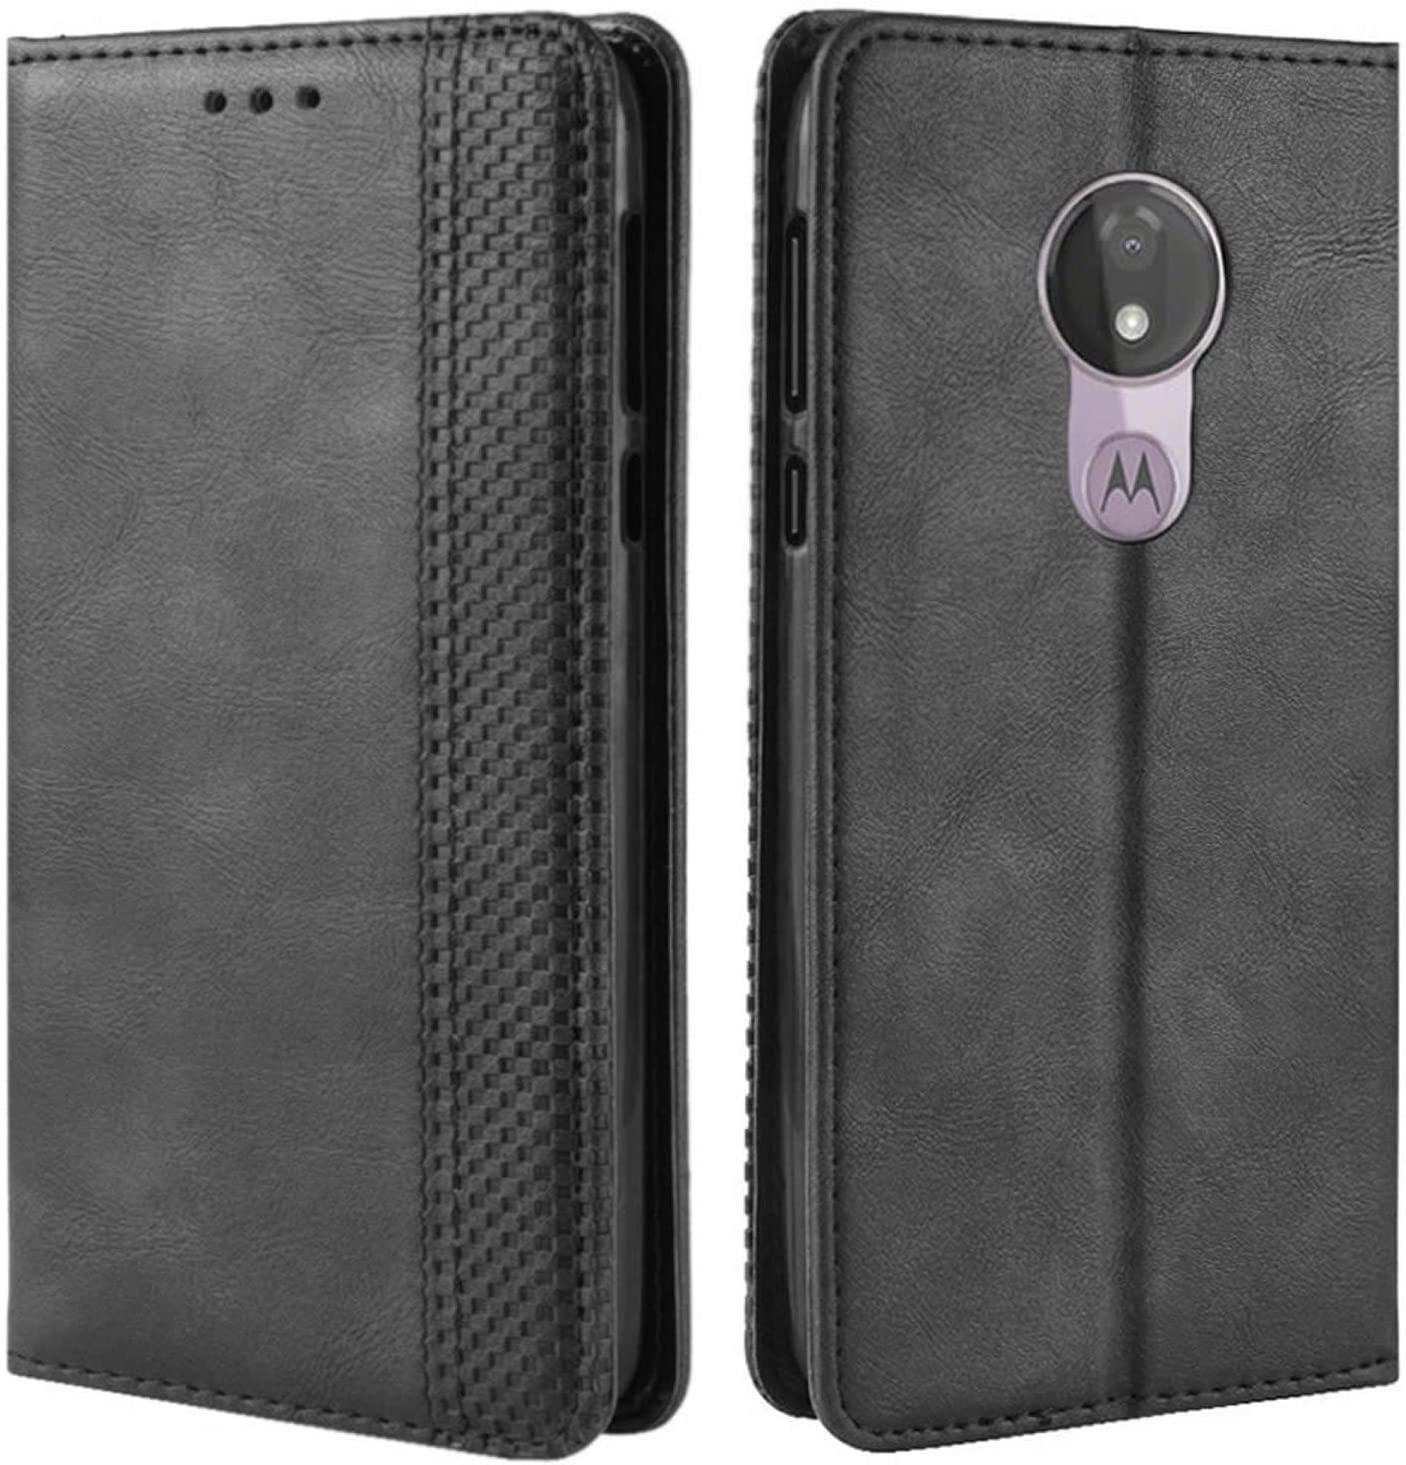 HualuBro Motorola Moto G7 Power Case, Moto G7 Supra Case, Moto G7 Optimo Maxx Case, Magnetic Full Body Shockproof Flip Leather Wallet Case Cover with Card Holder for Moto G7 Power Phone Case (Black)